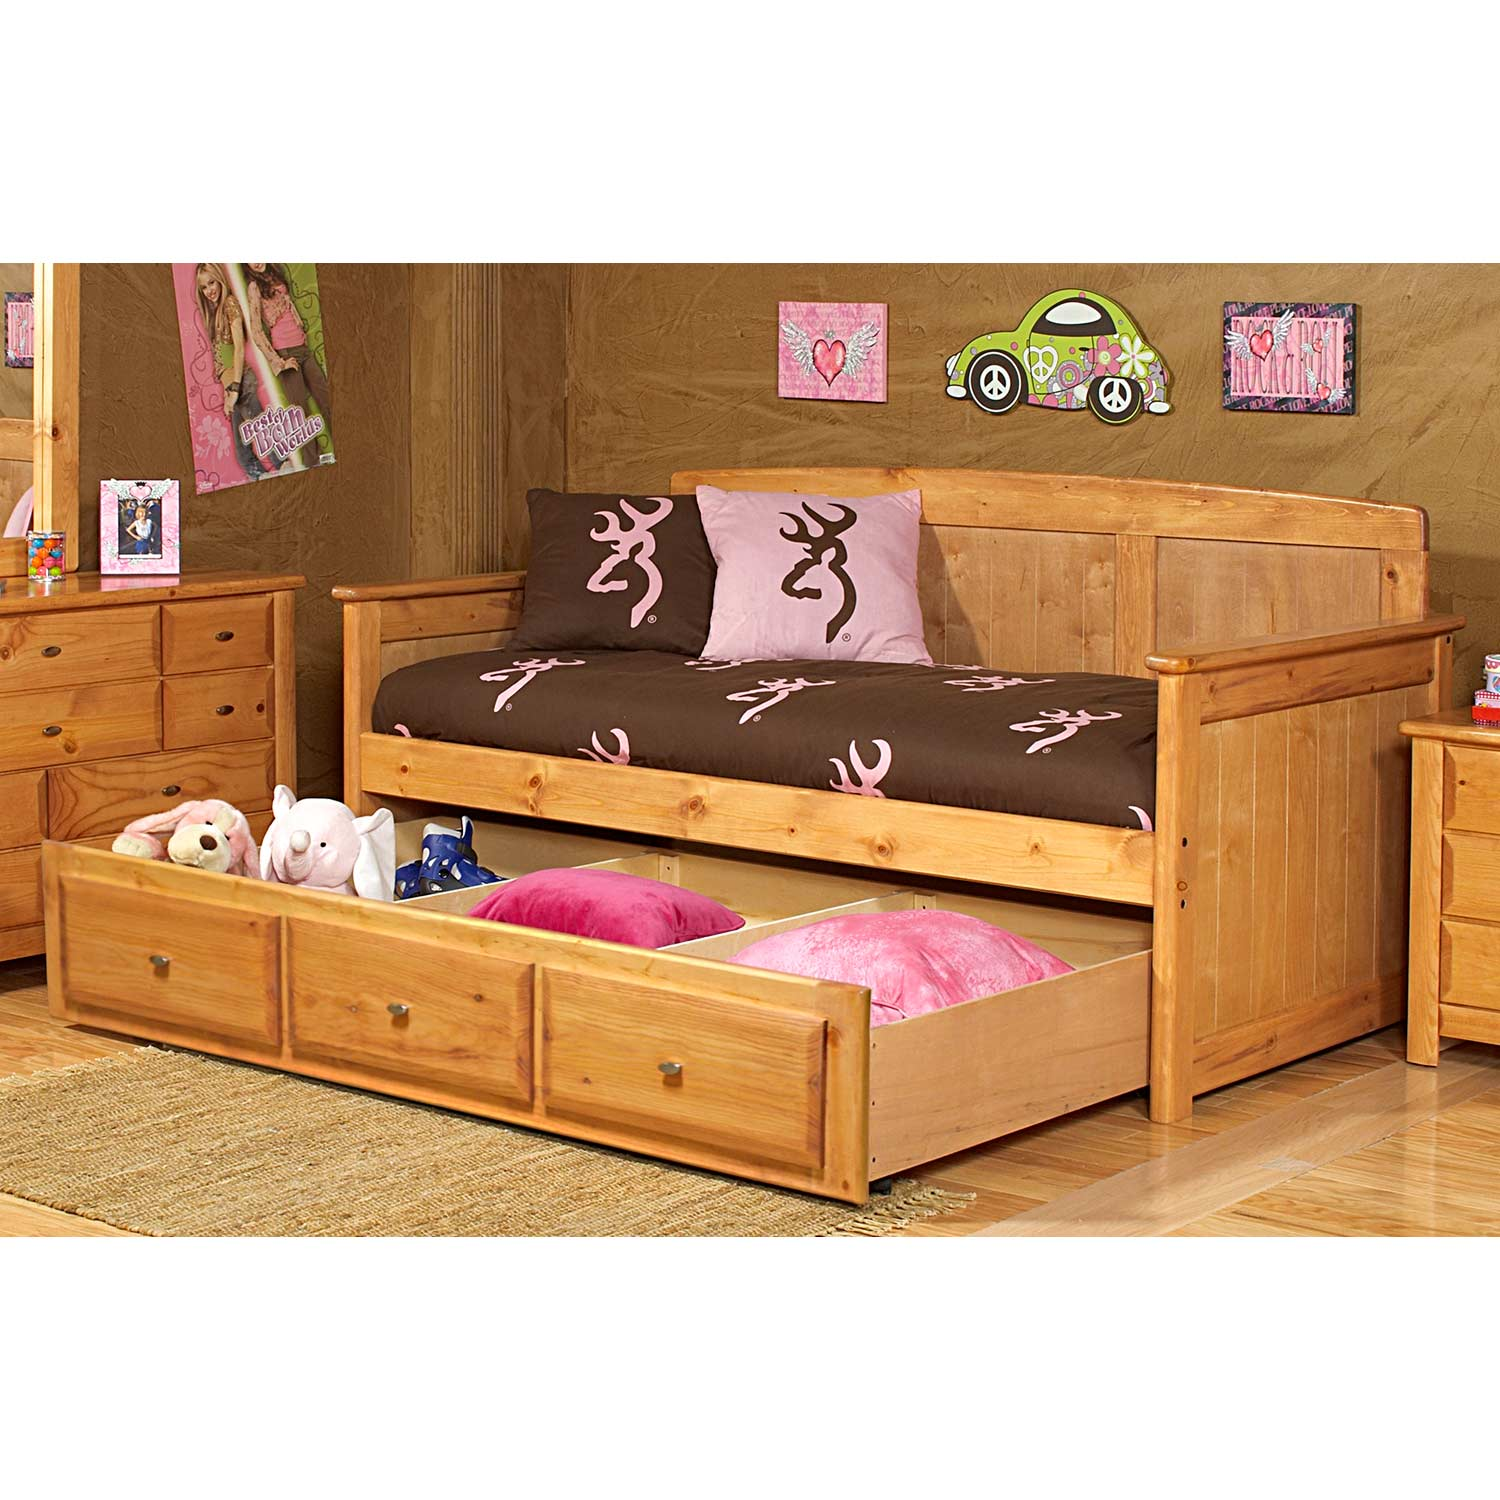 cottage style daybed storage trundle  caramel finish cottage style daybed bedding cottage style wood daybed